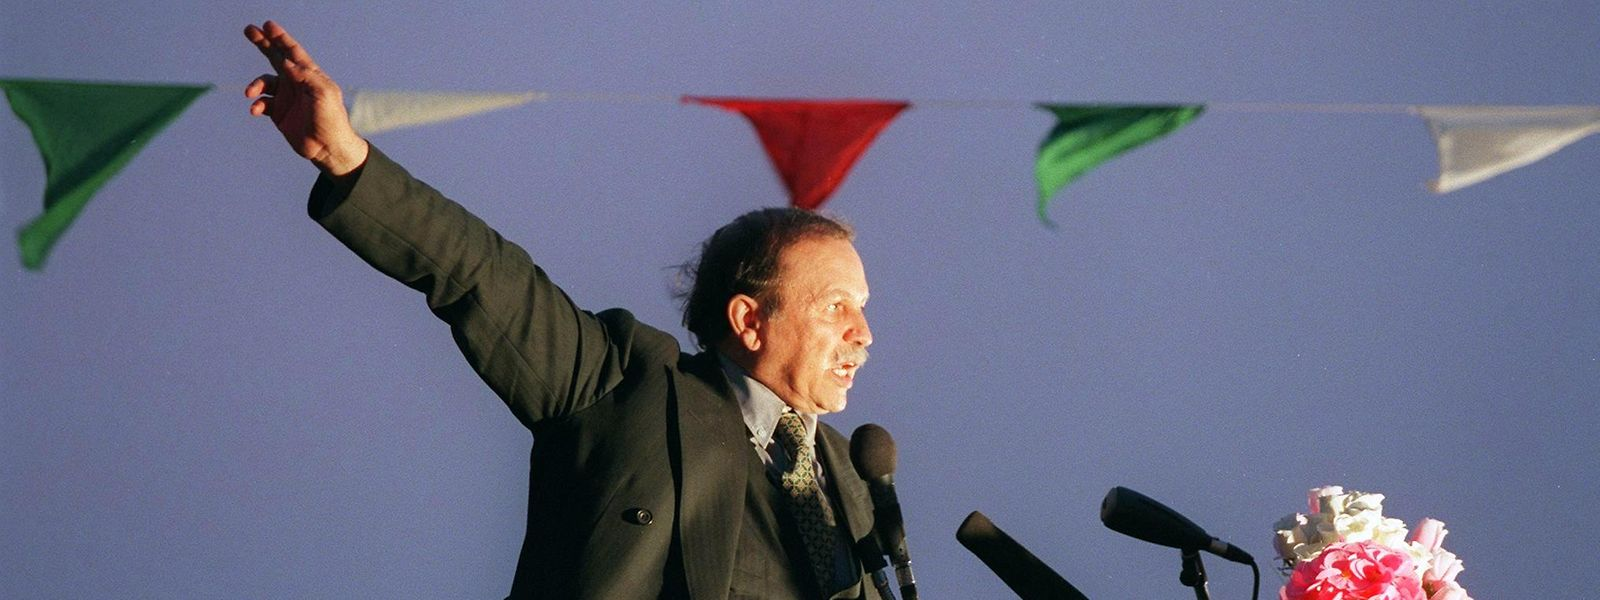 Abdelaziz Bouteflika im April 1999.